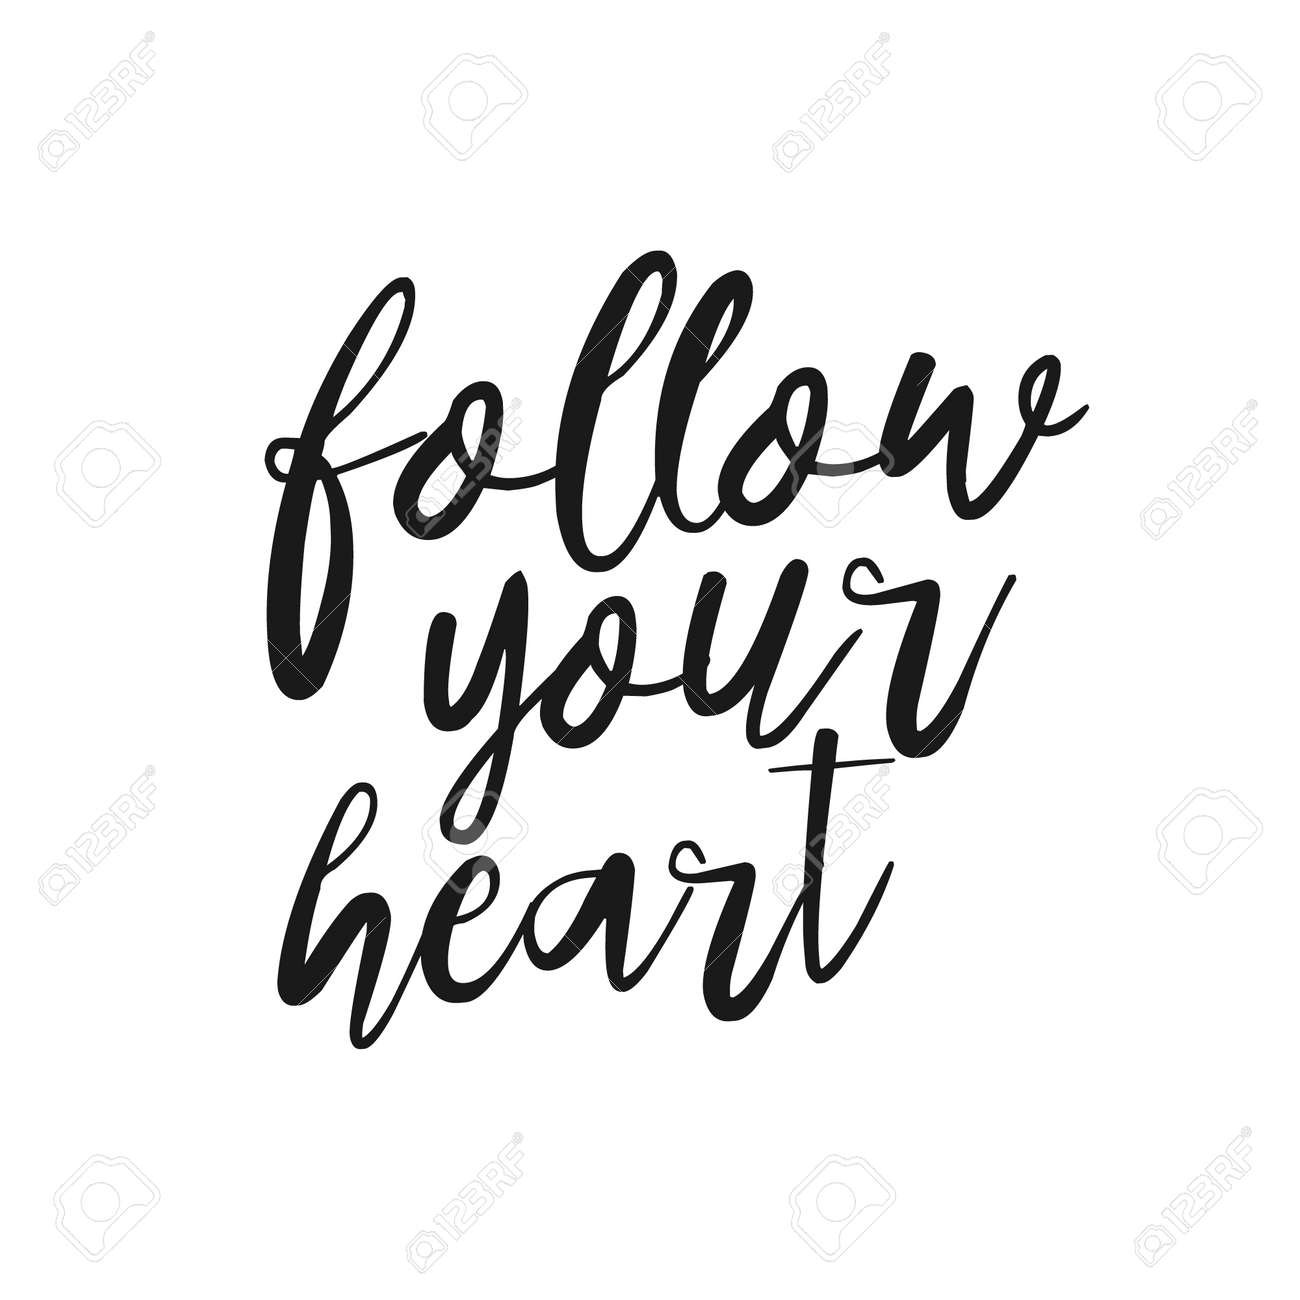 Follow Your Heart Hand Drawn Inspirational Quote Hand Lettering